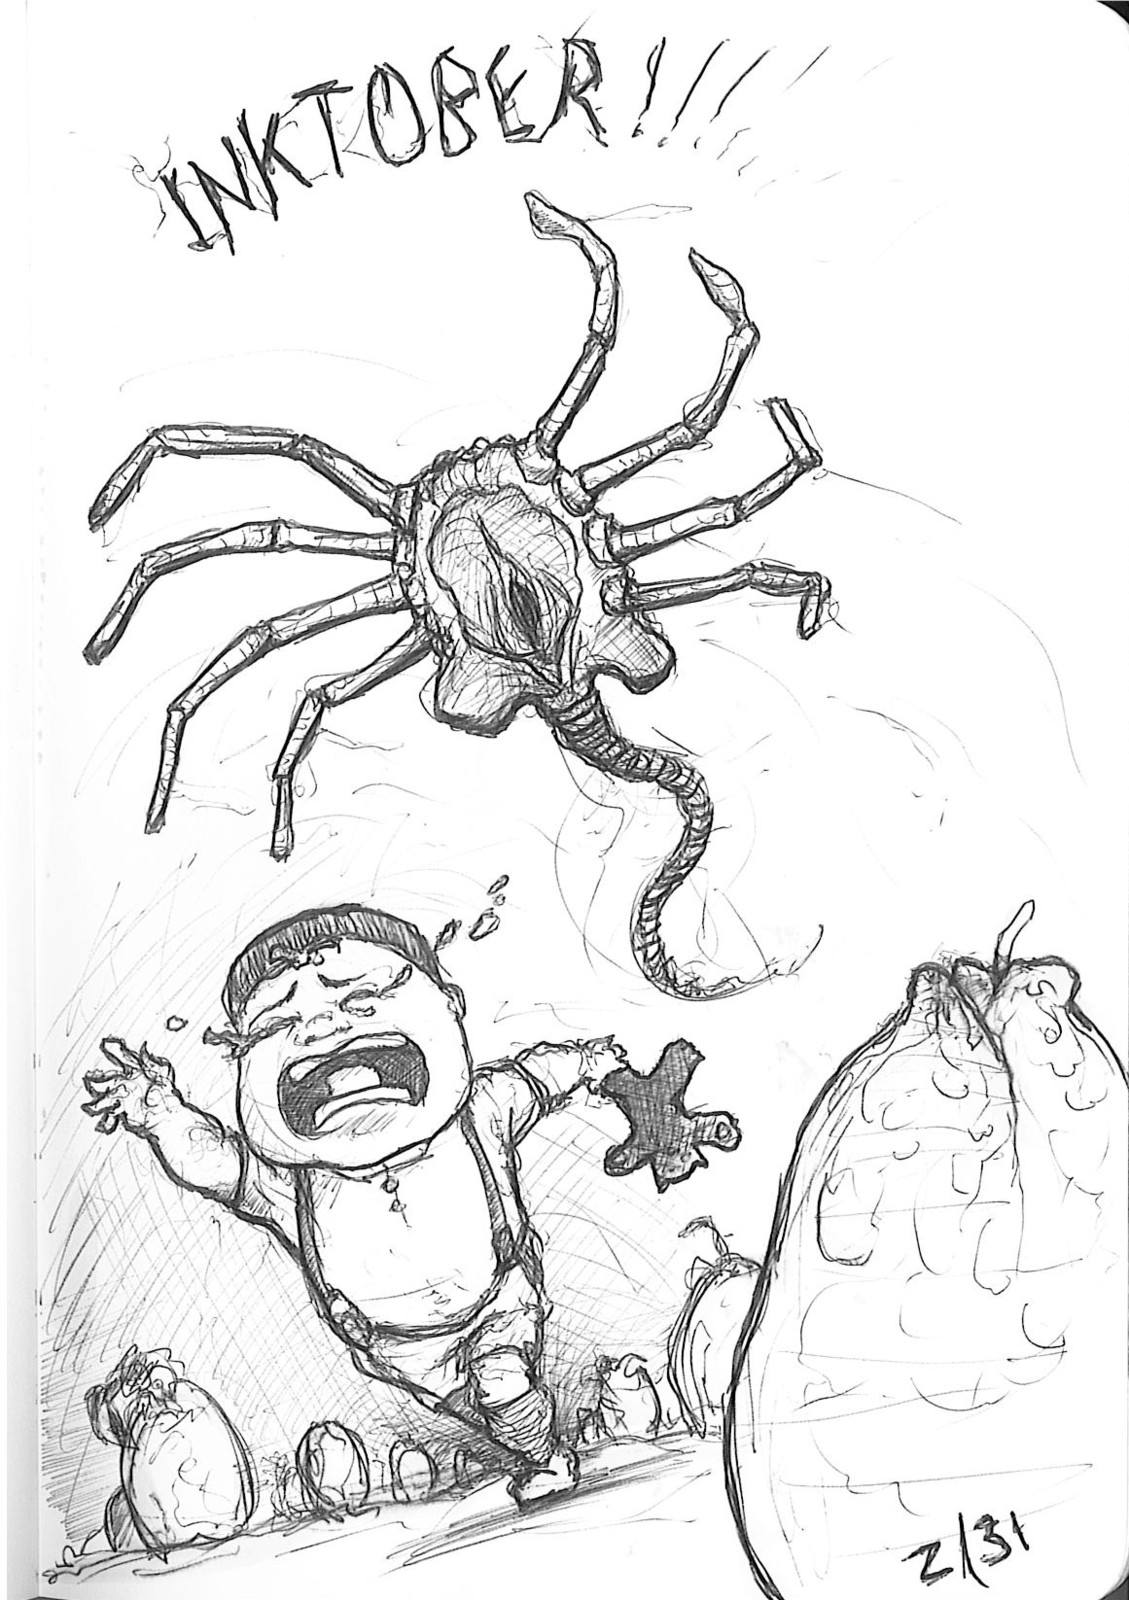 Day 2 Kids and facehuggers. a match made in heaven. Got more scenes using this idea.